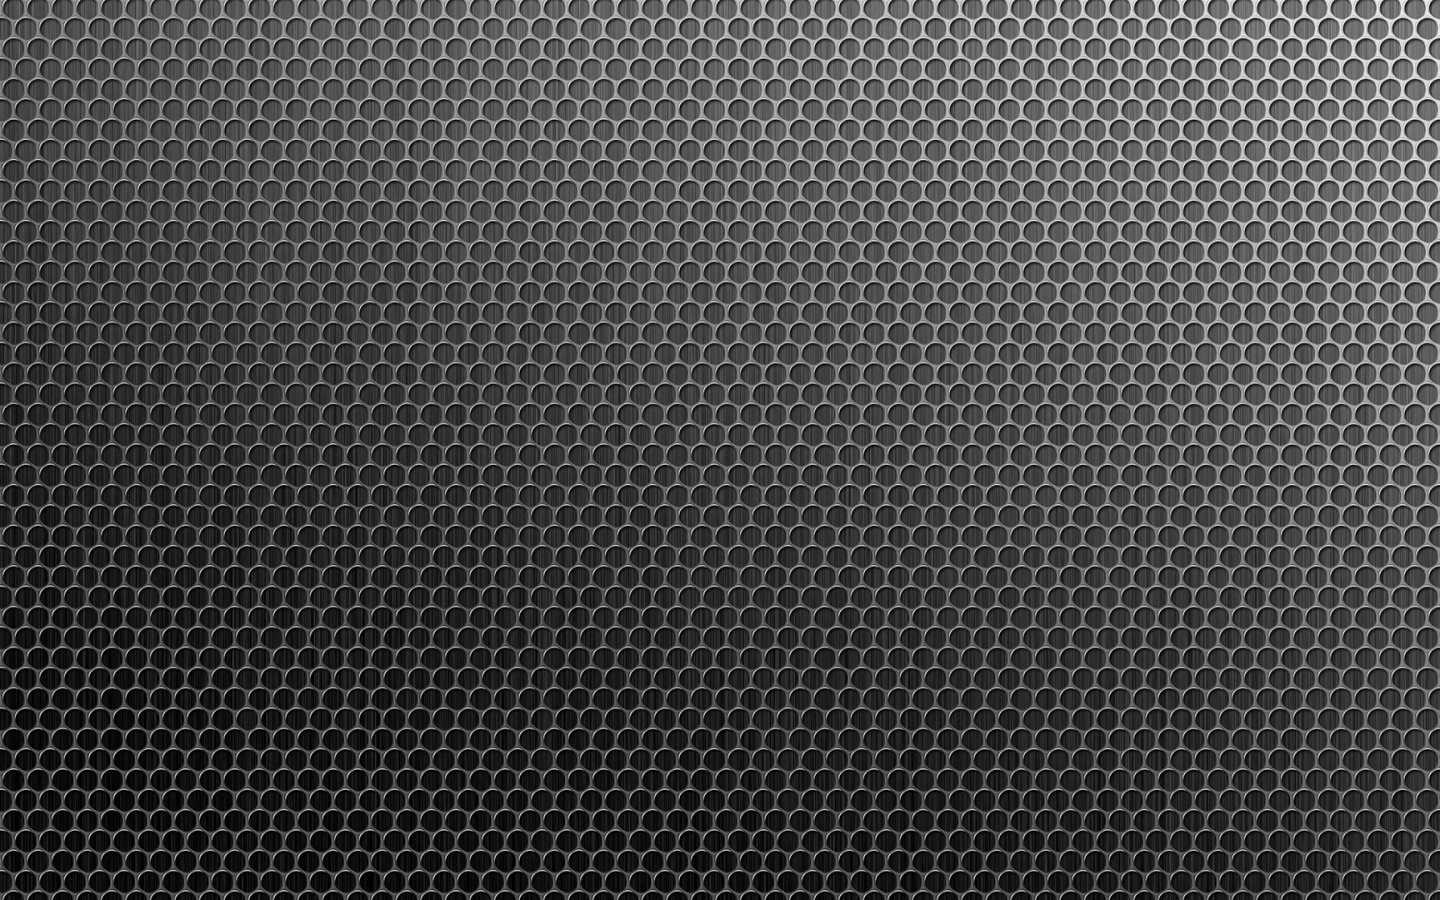 1366x768 grey honeycomb pattern - photo #1